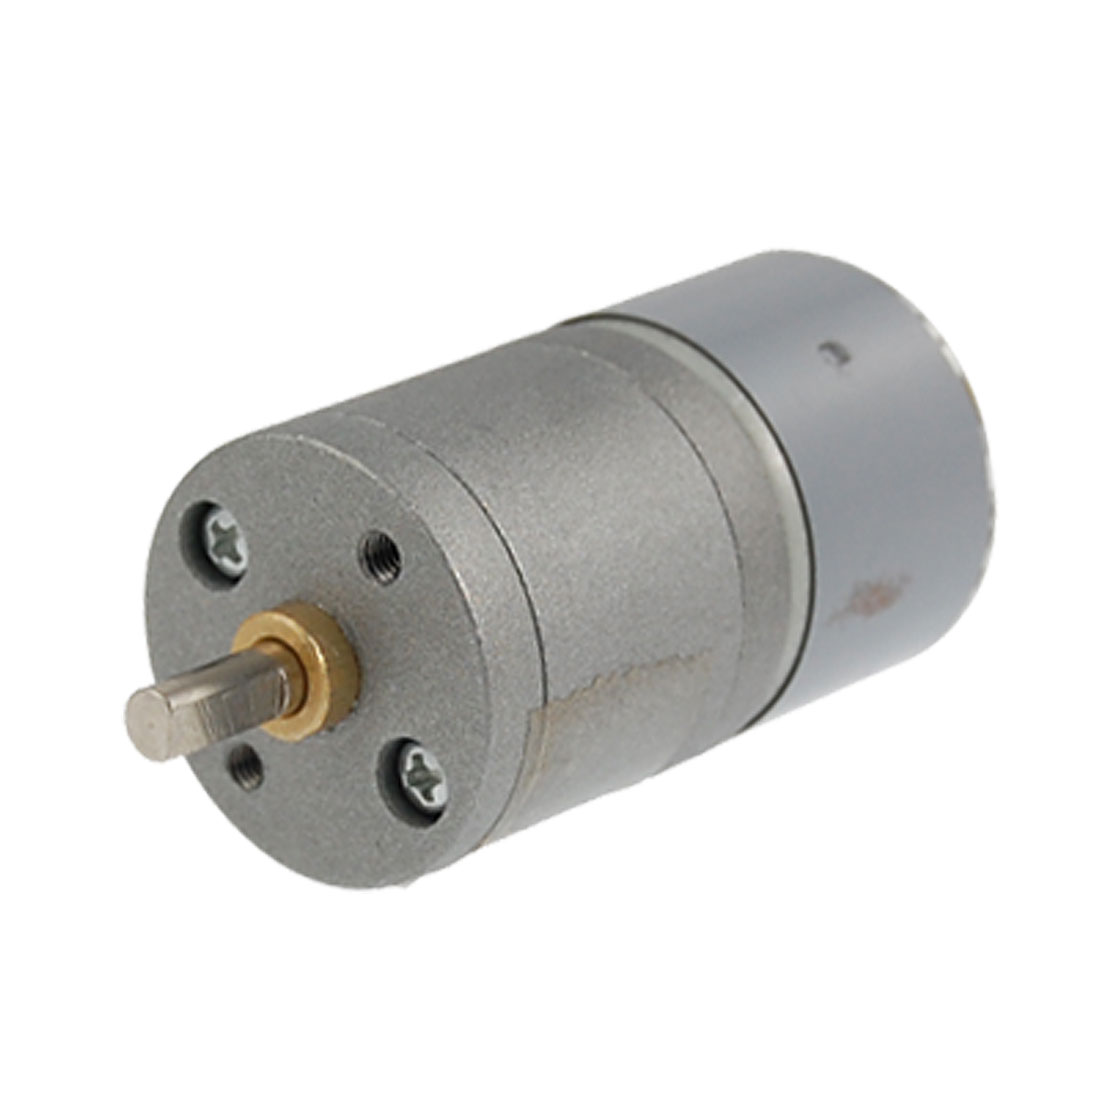 30RPM DC 6V 0.1A 25mm Diameter Gear Box Speed Reducer Motor